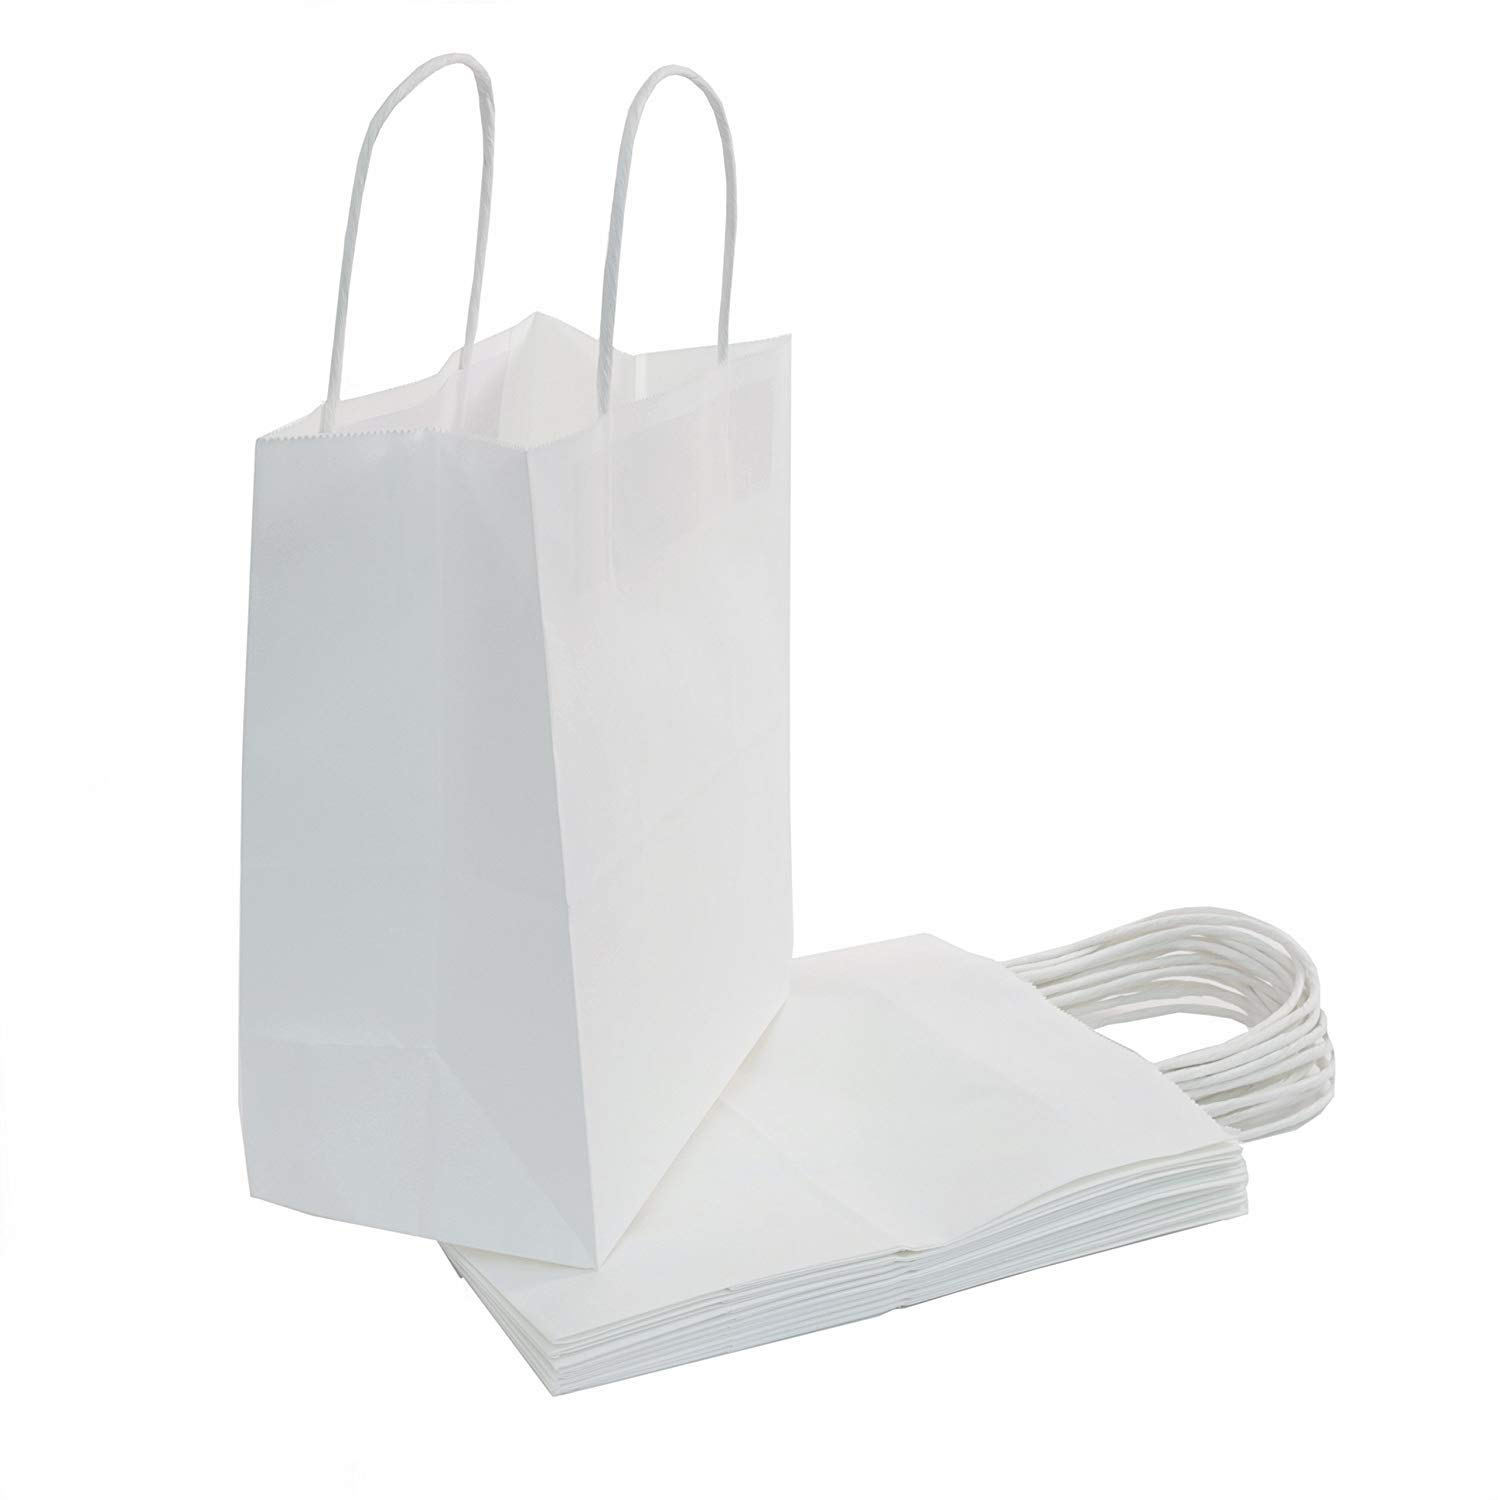 "250pcs White Kraft Shopping Paper Bag 60# Natural Kraft Paper 8 x 4 x 10 1/2"" -250 Bags- Mechandise, Party, Gift Bags"